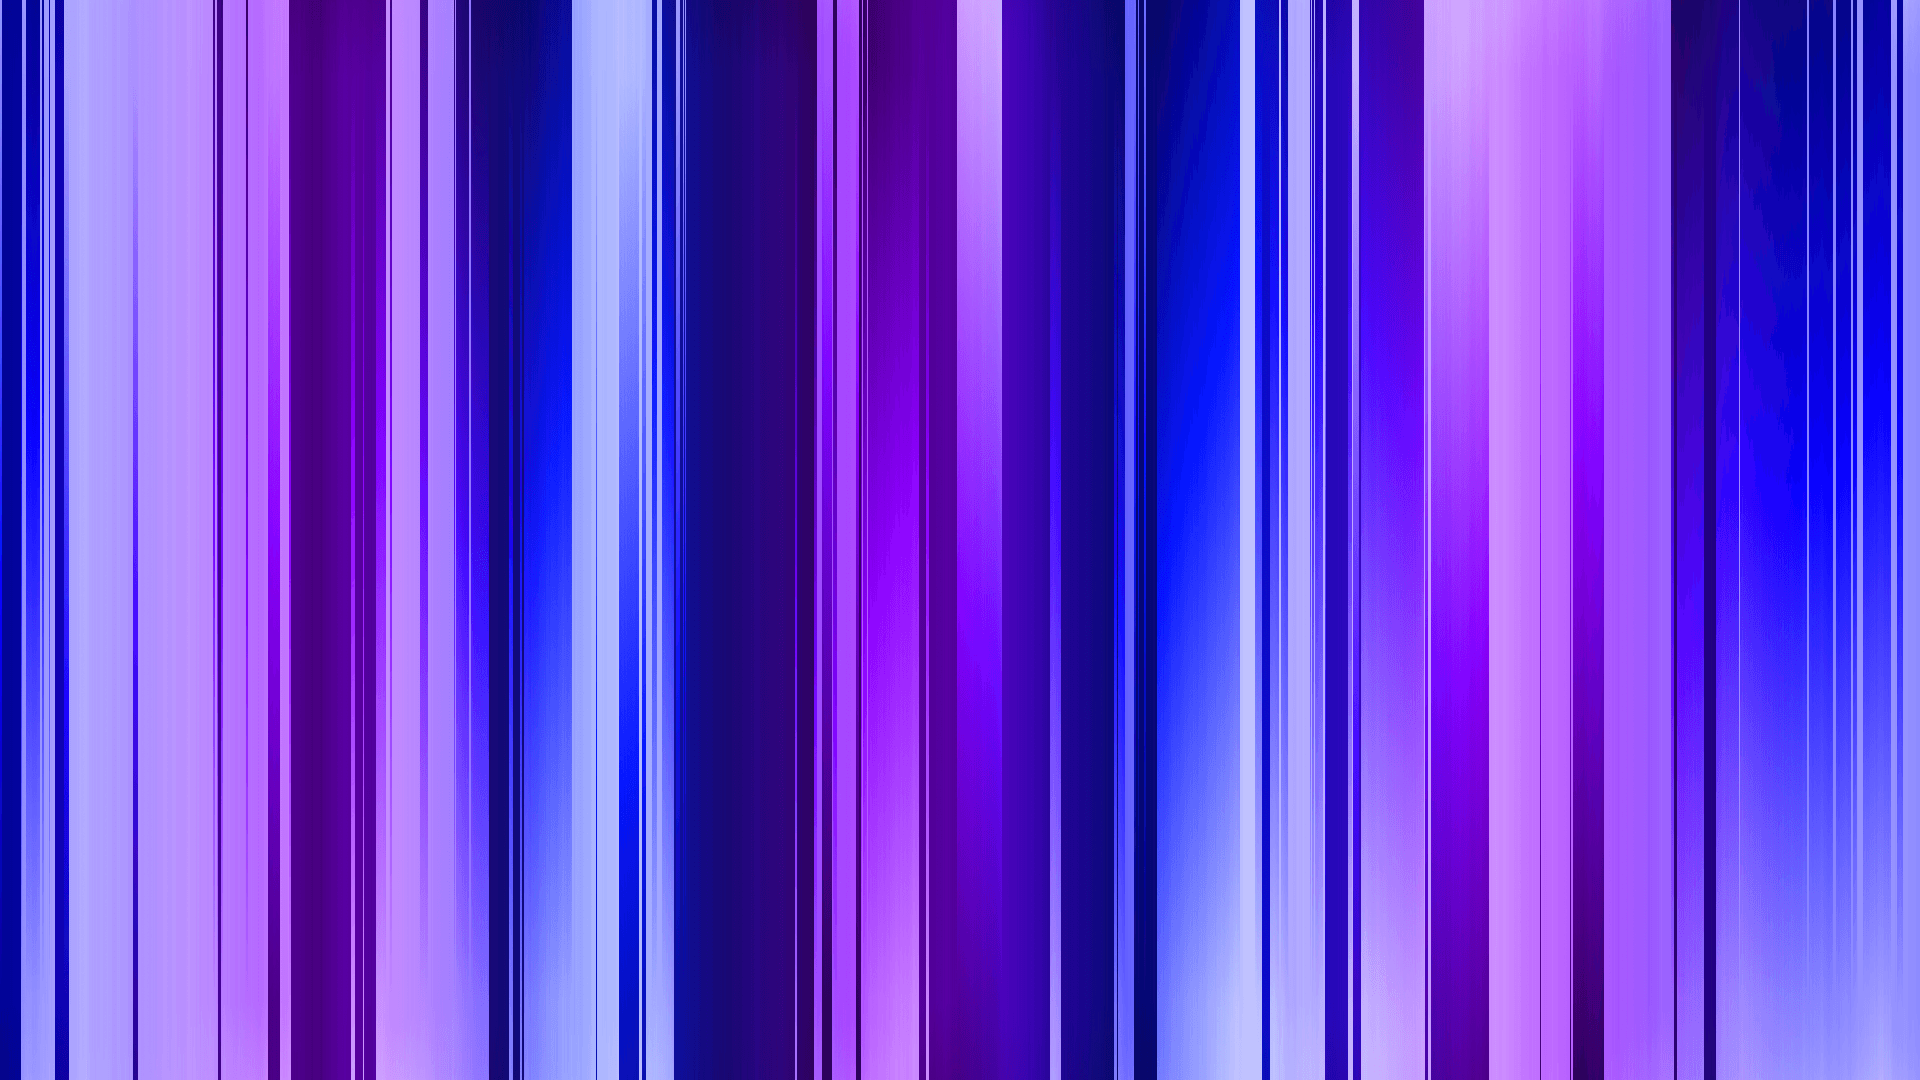 Blue And Purple Backgrounds 1920x1080